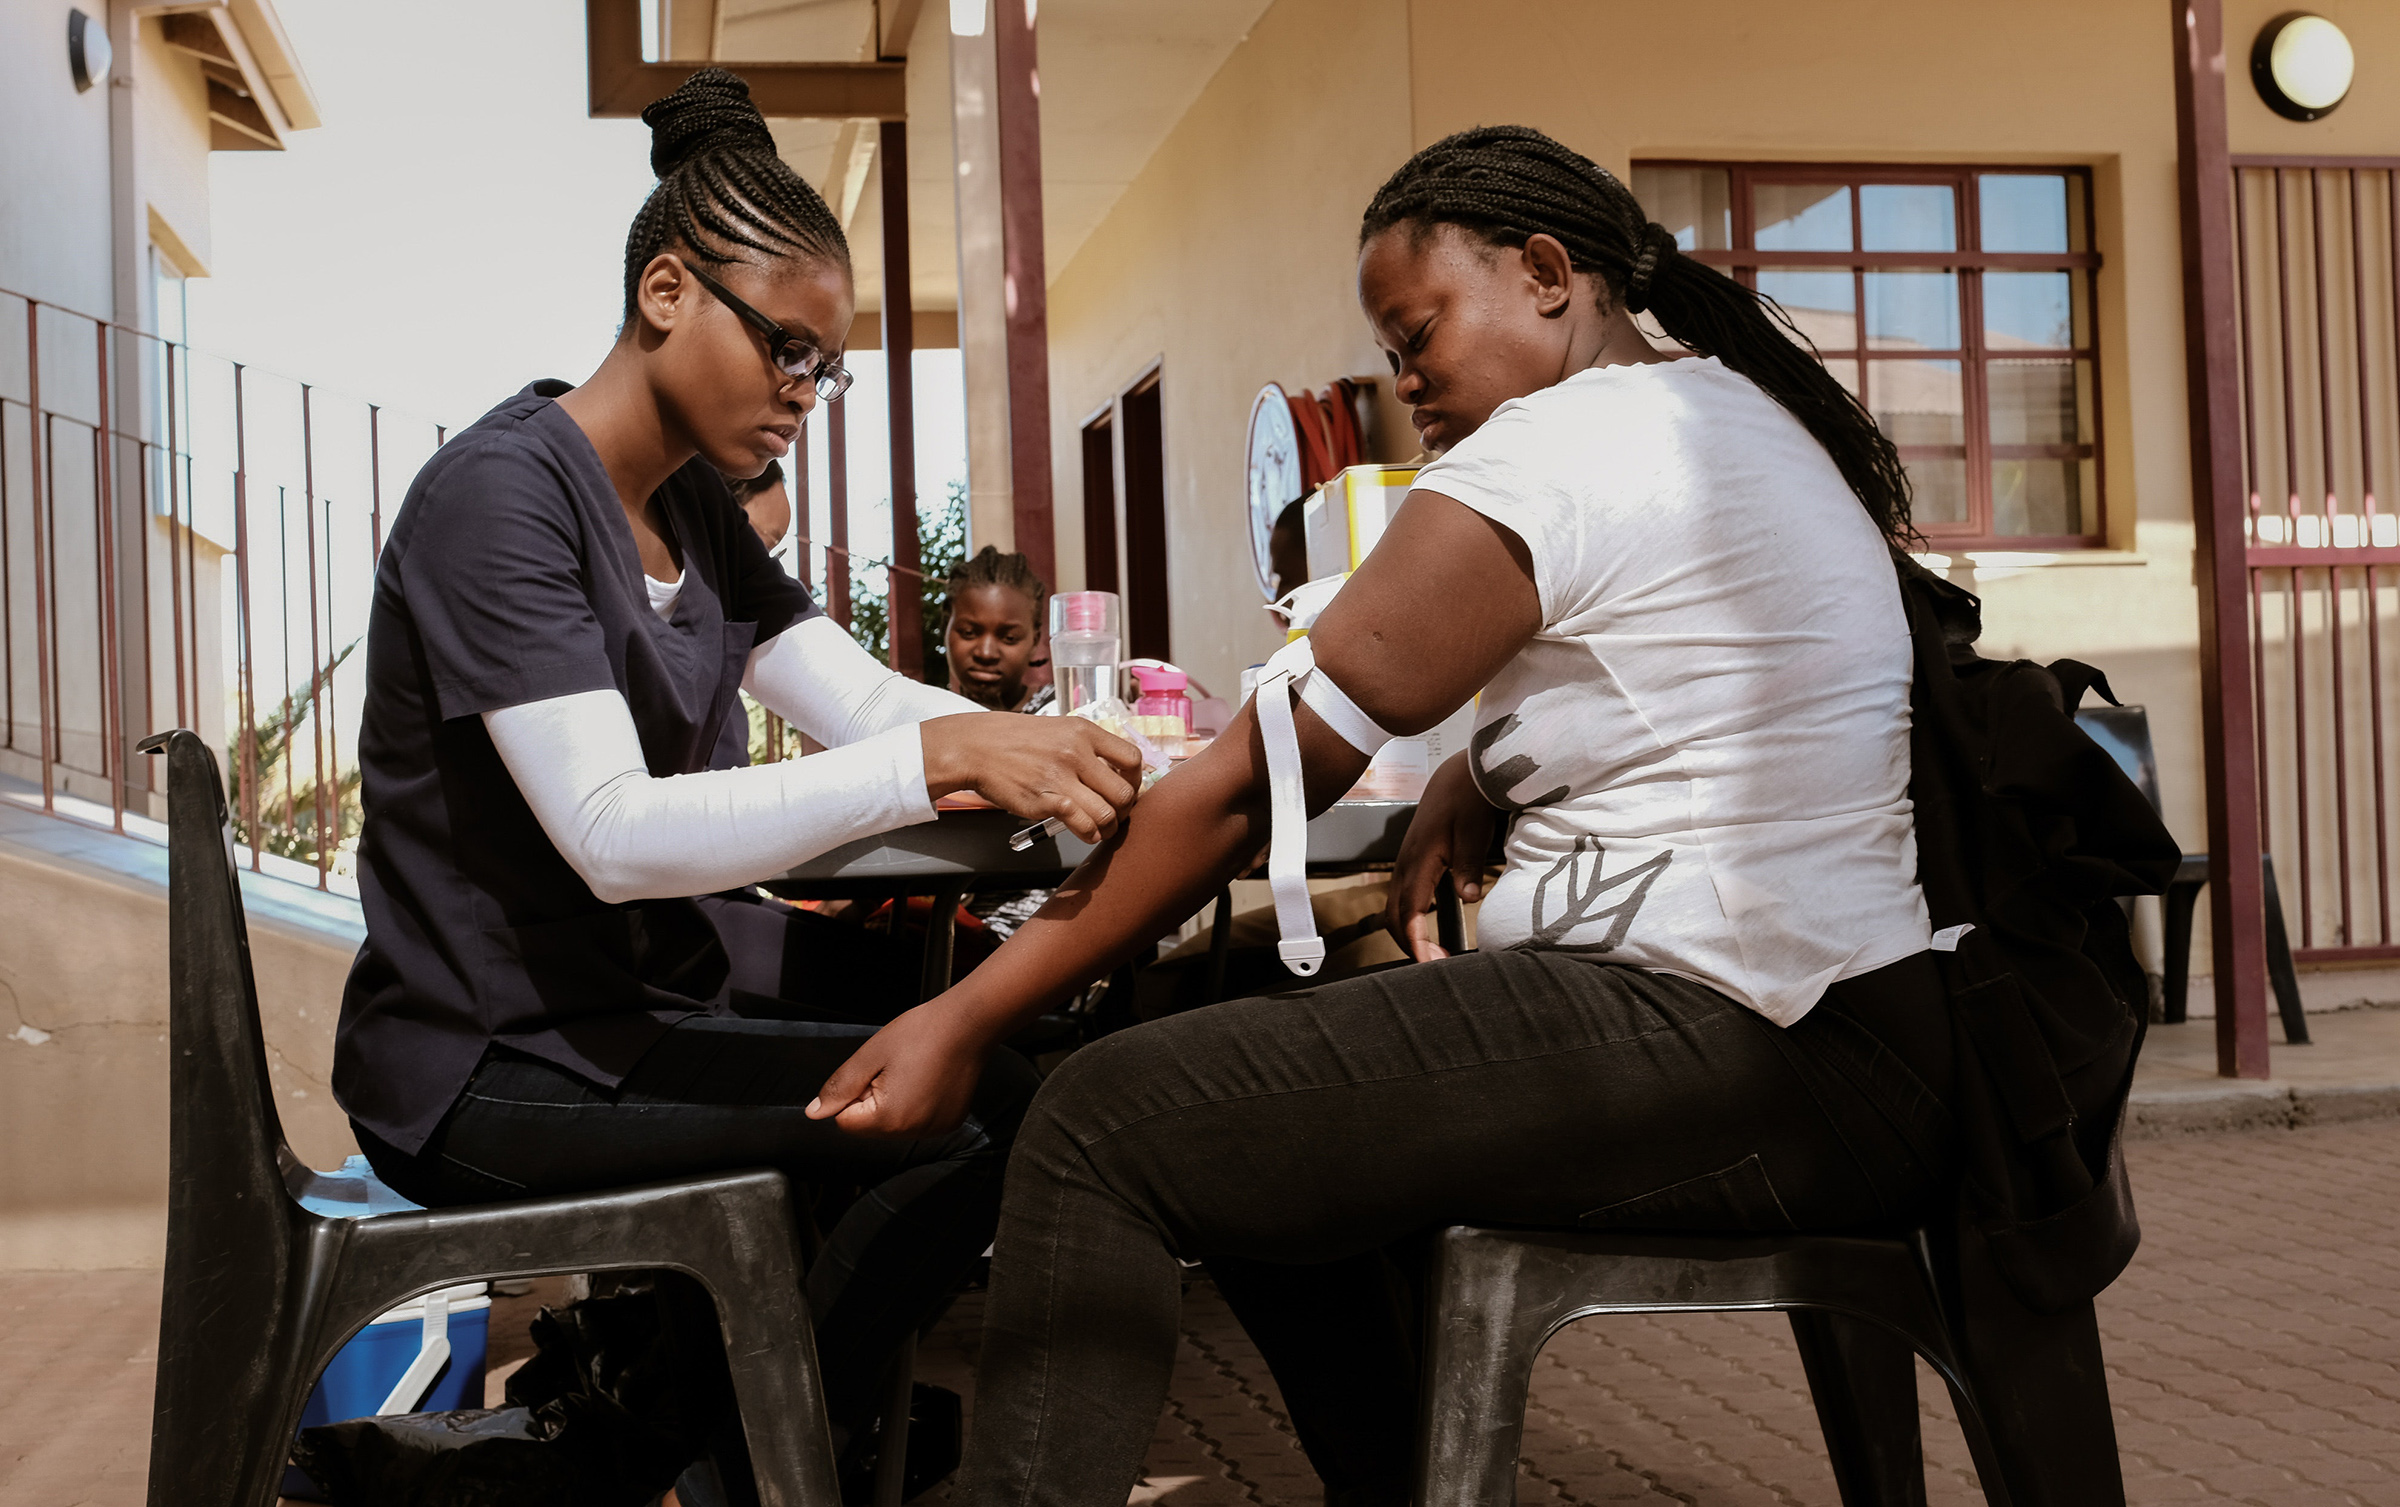 Njandereeko get her blood withdrawn for HIV monitoring in Windhoek, Namibia during the summer of 2019. DREAMS program attendees are given free medical services of HIV testing, medical assistance, counseling and family planning tools throughout the program.